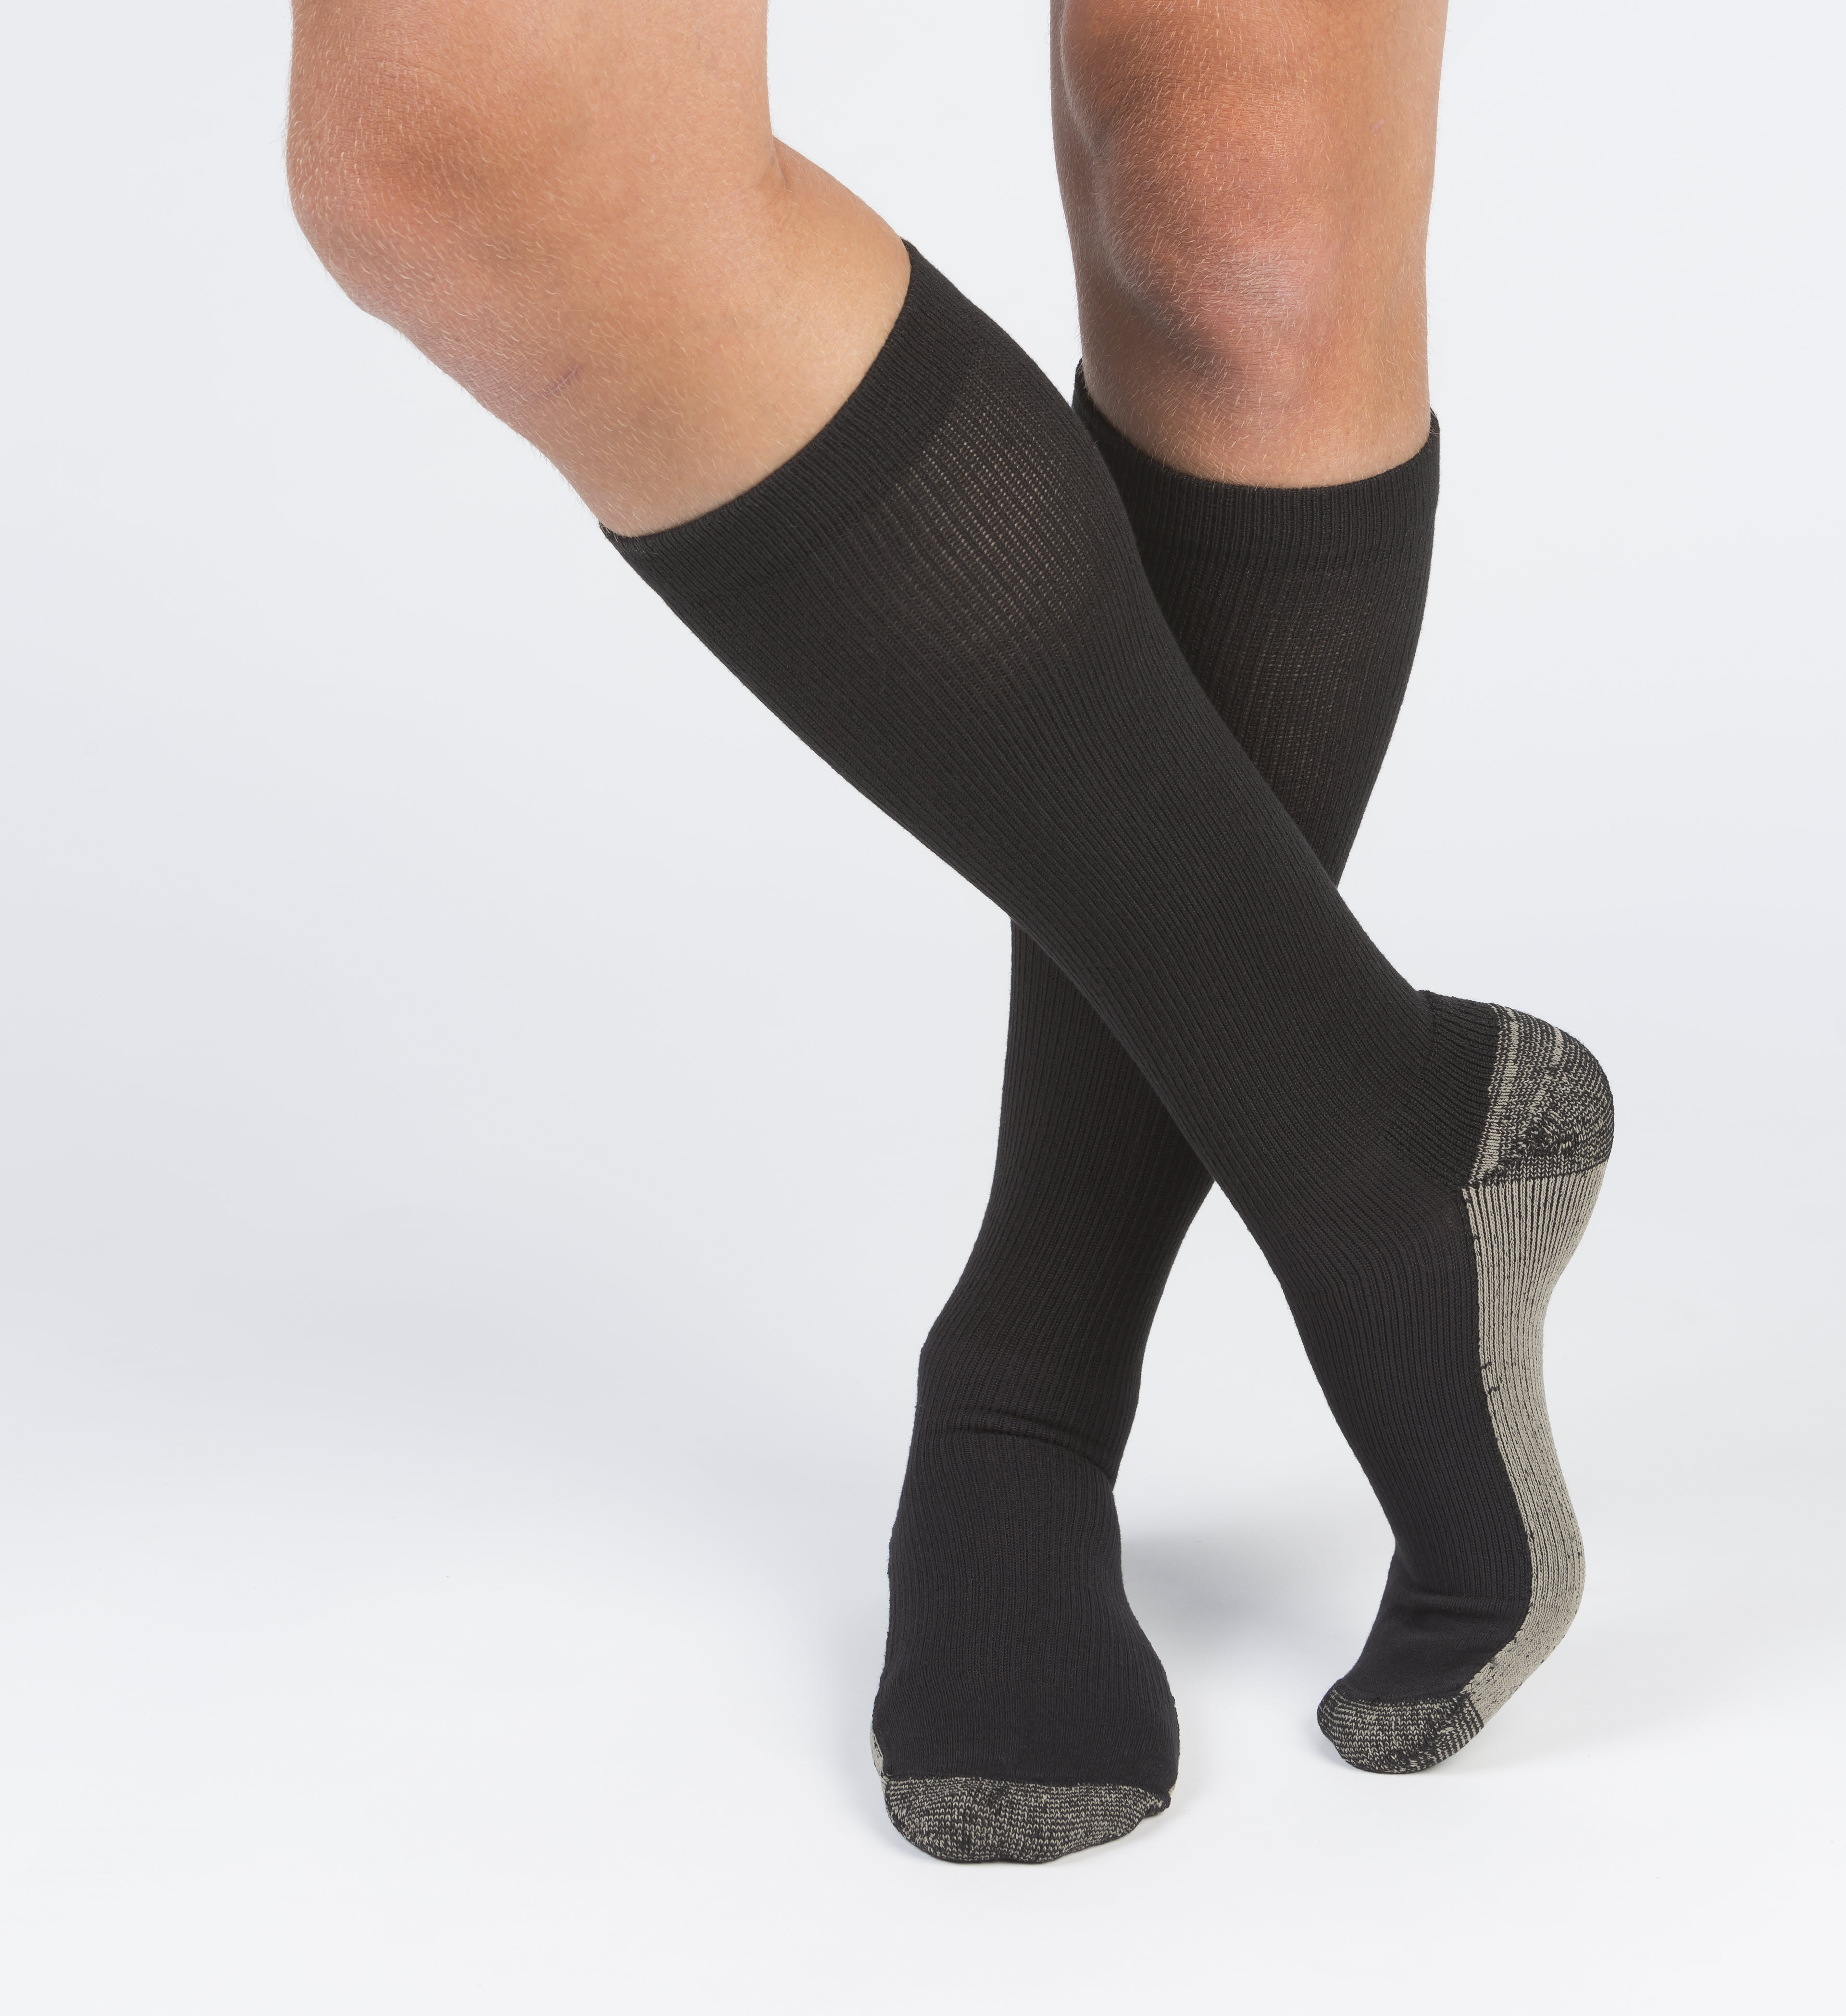 analysis of performance socks New york, nov 21, 2017 /prnewswire/ -- socks market - global industry  analysis, size, share, growth, trends and forecast 2015 - 2025.